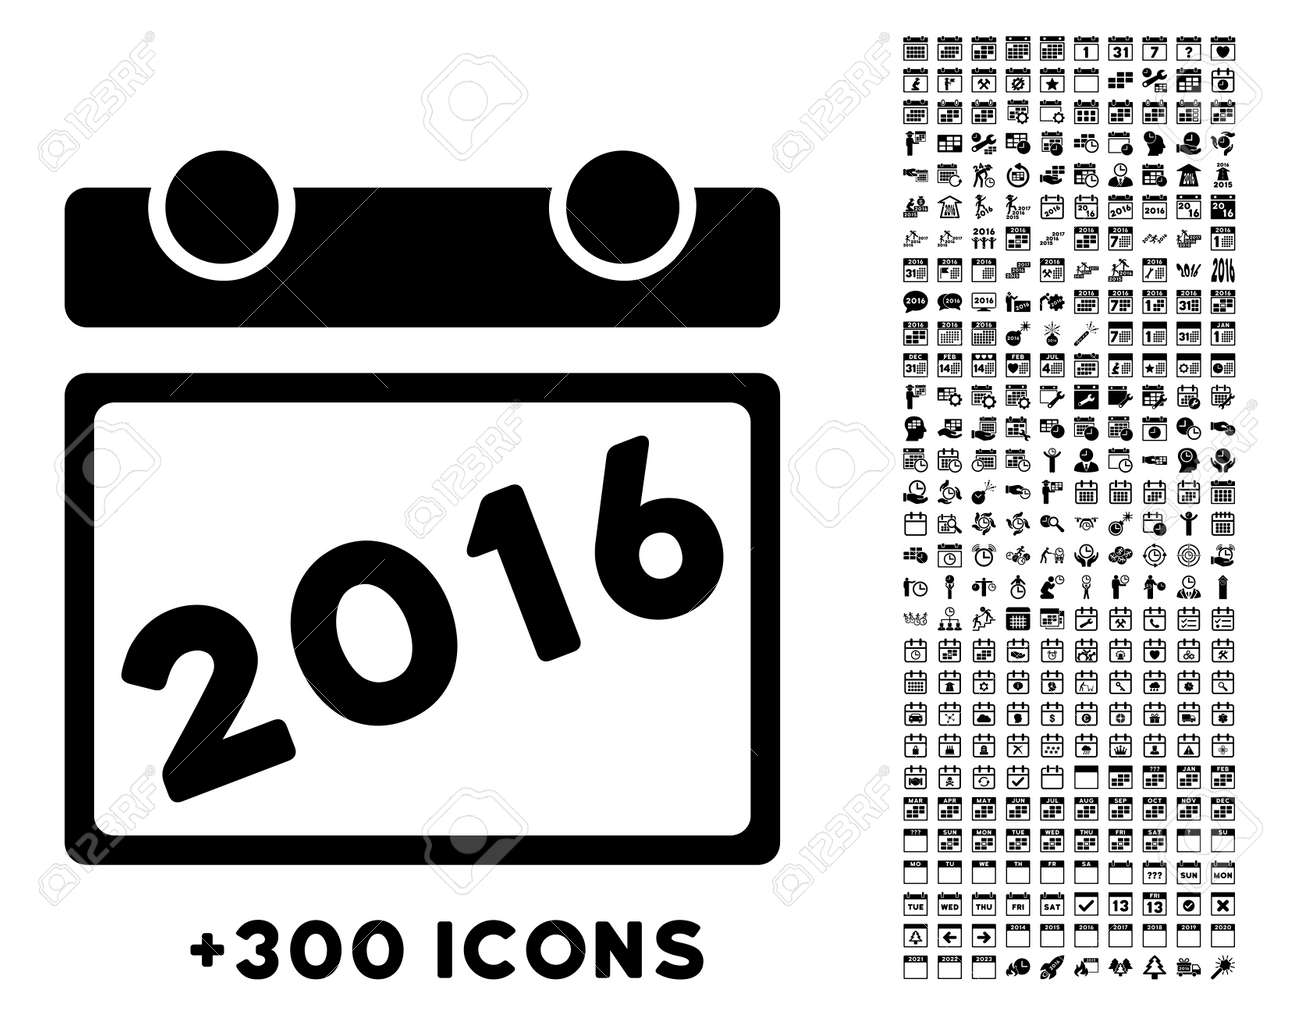 Organizer 2016 2016 Organizer Vector Pictogram With Additional 300 Date And